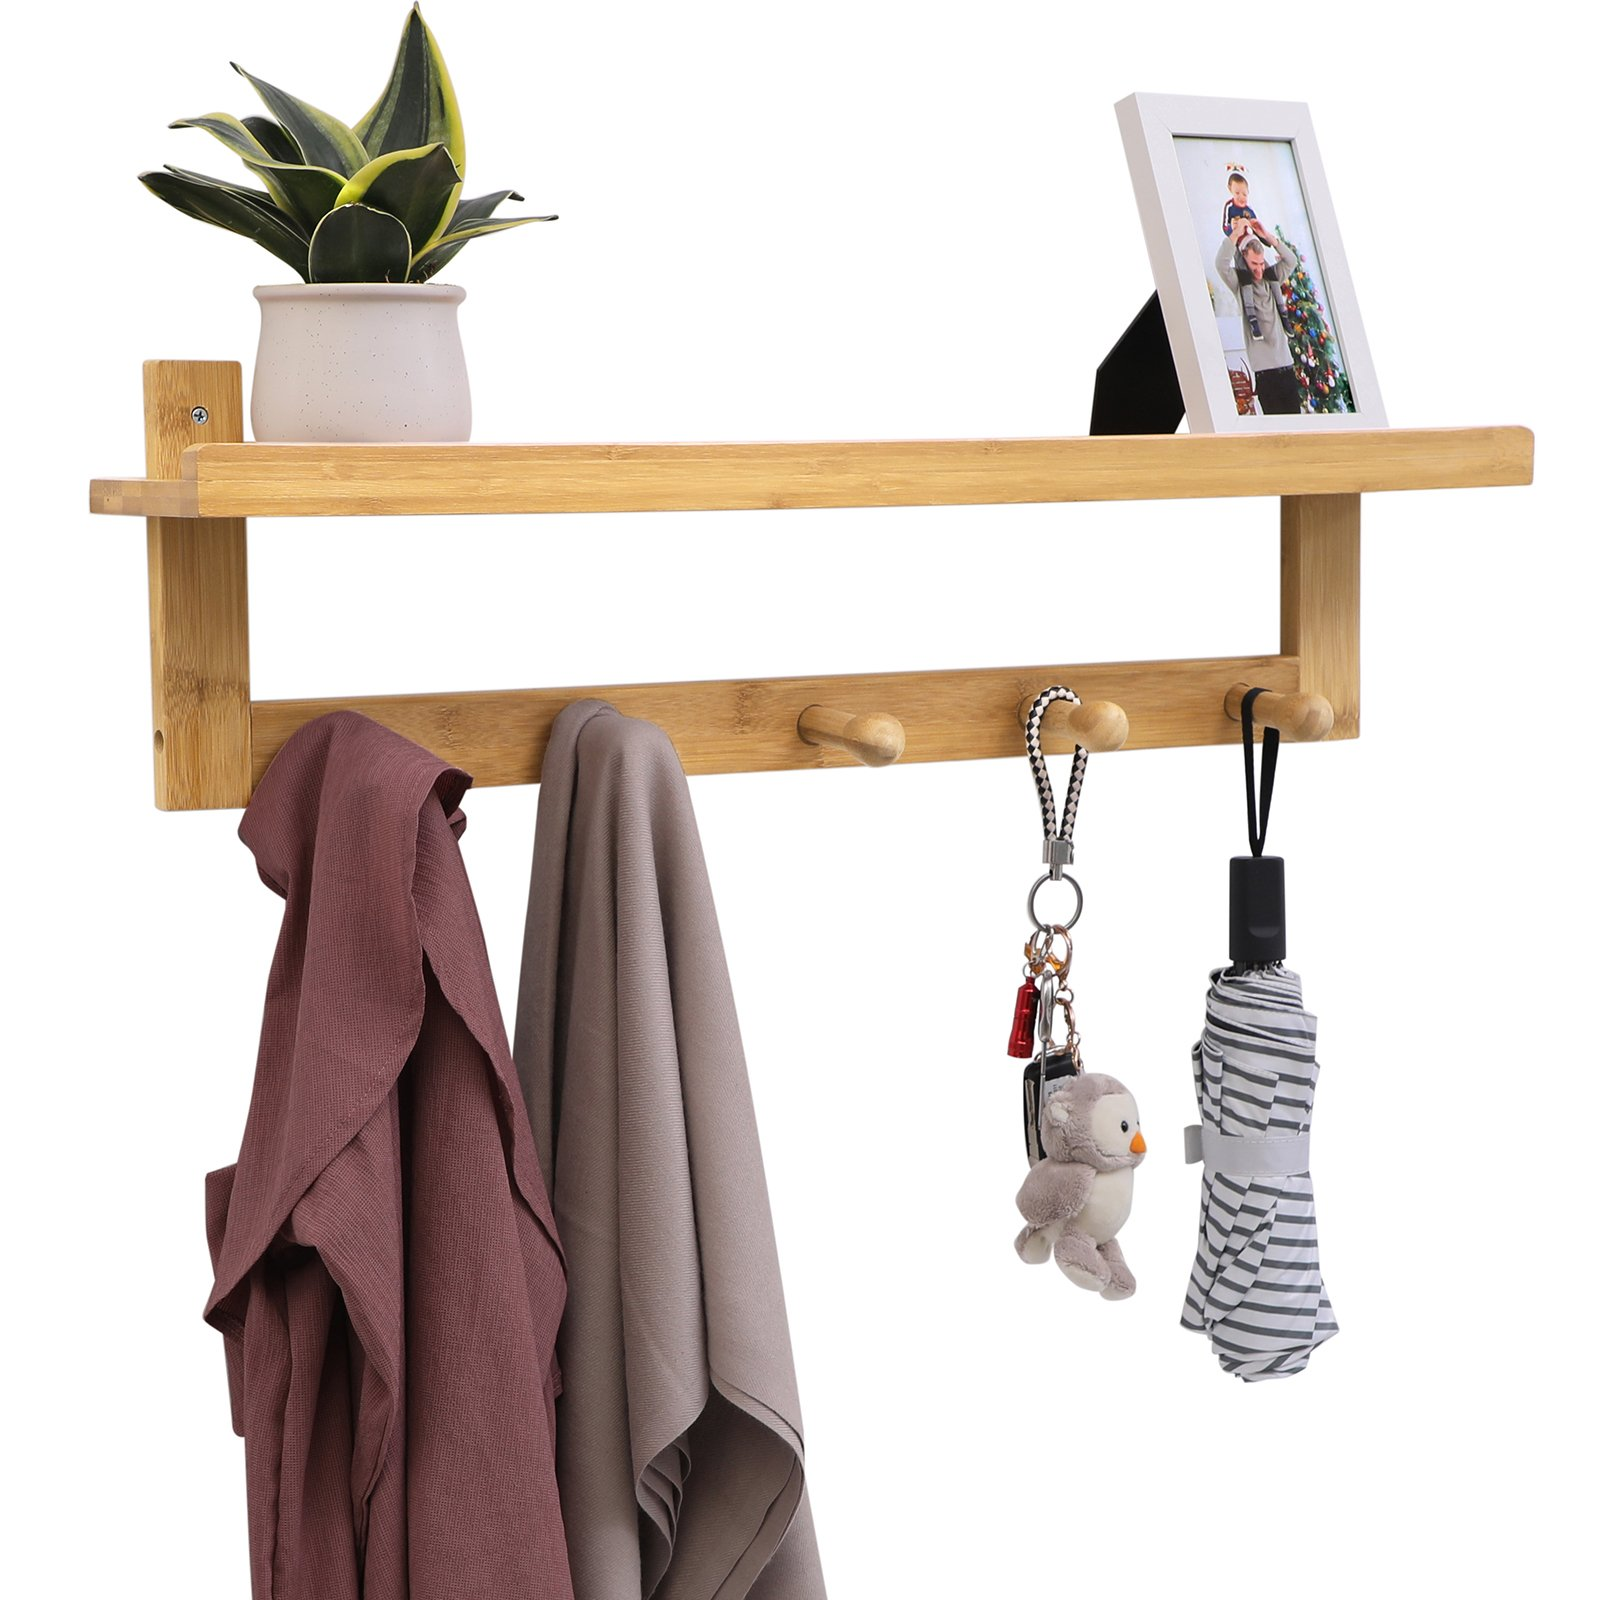 SONGMICS Coat Hooks Shelf with 5 Bamboo Hooks, Wall Mounted Coat Rack with Storage Shelf, Hanging Entryway Shelf, Ideal for Living Room Bedroom Bathroom and Kitchen Natural Grain URCR105N